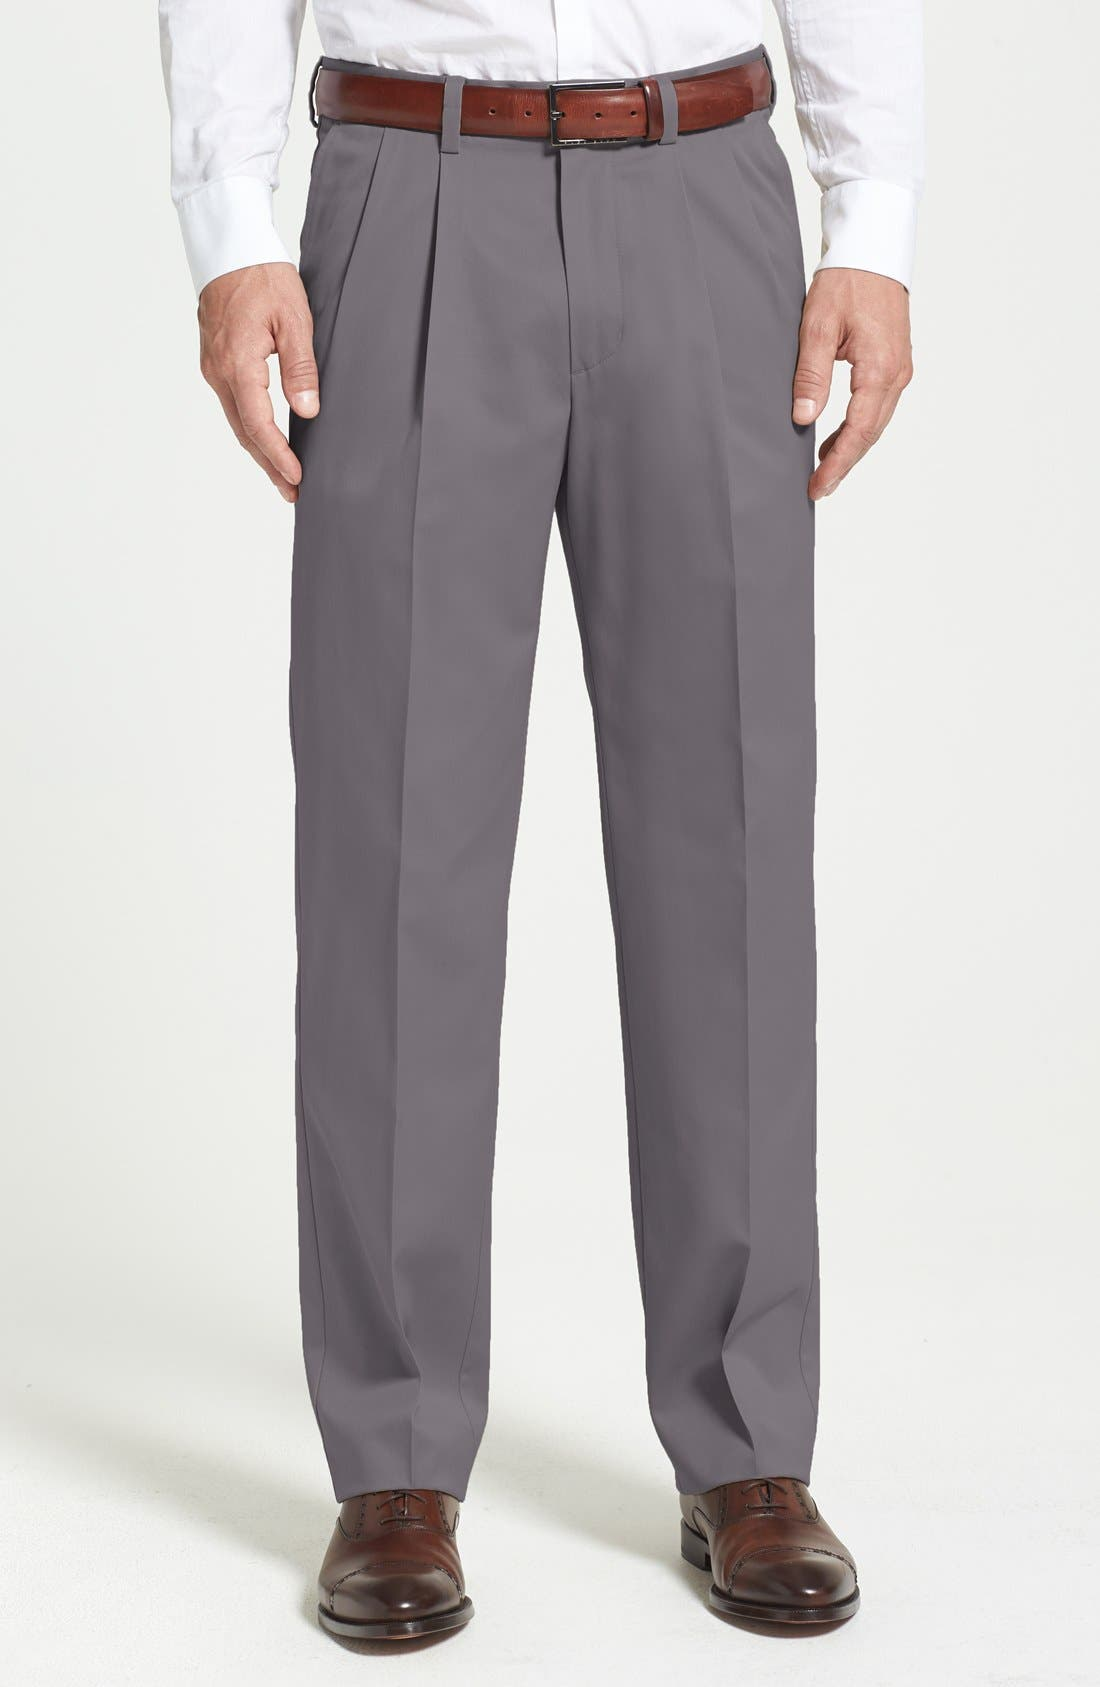 Pleated Mens Dress Pants tA8N38rT